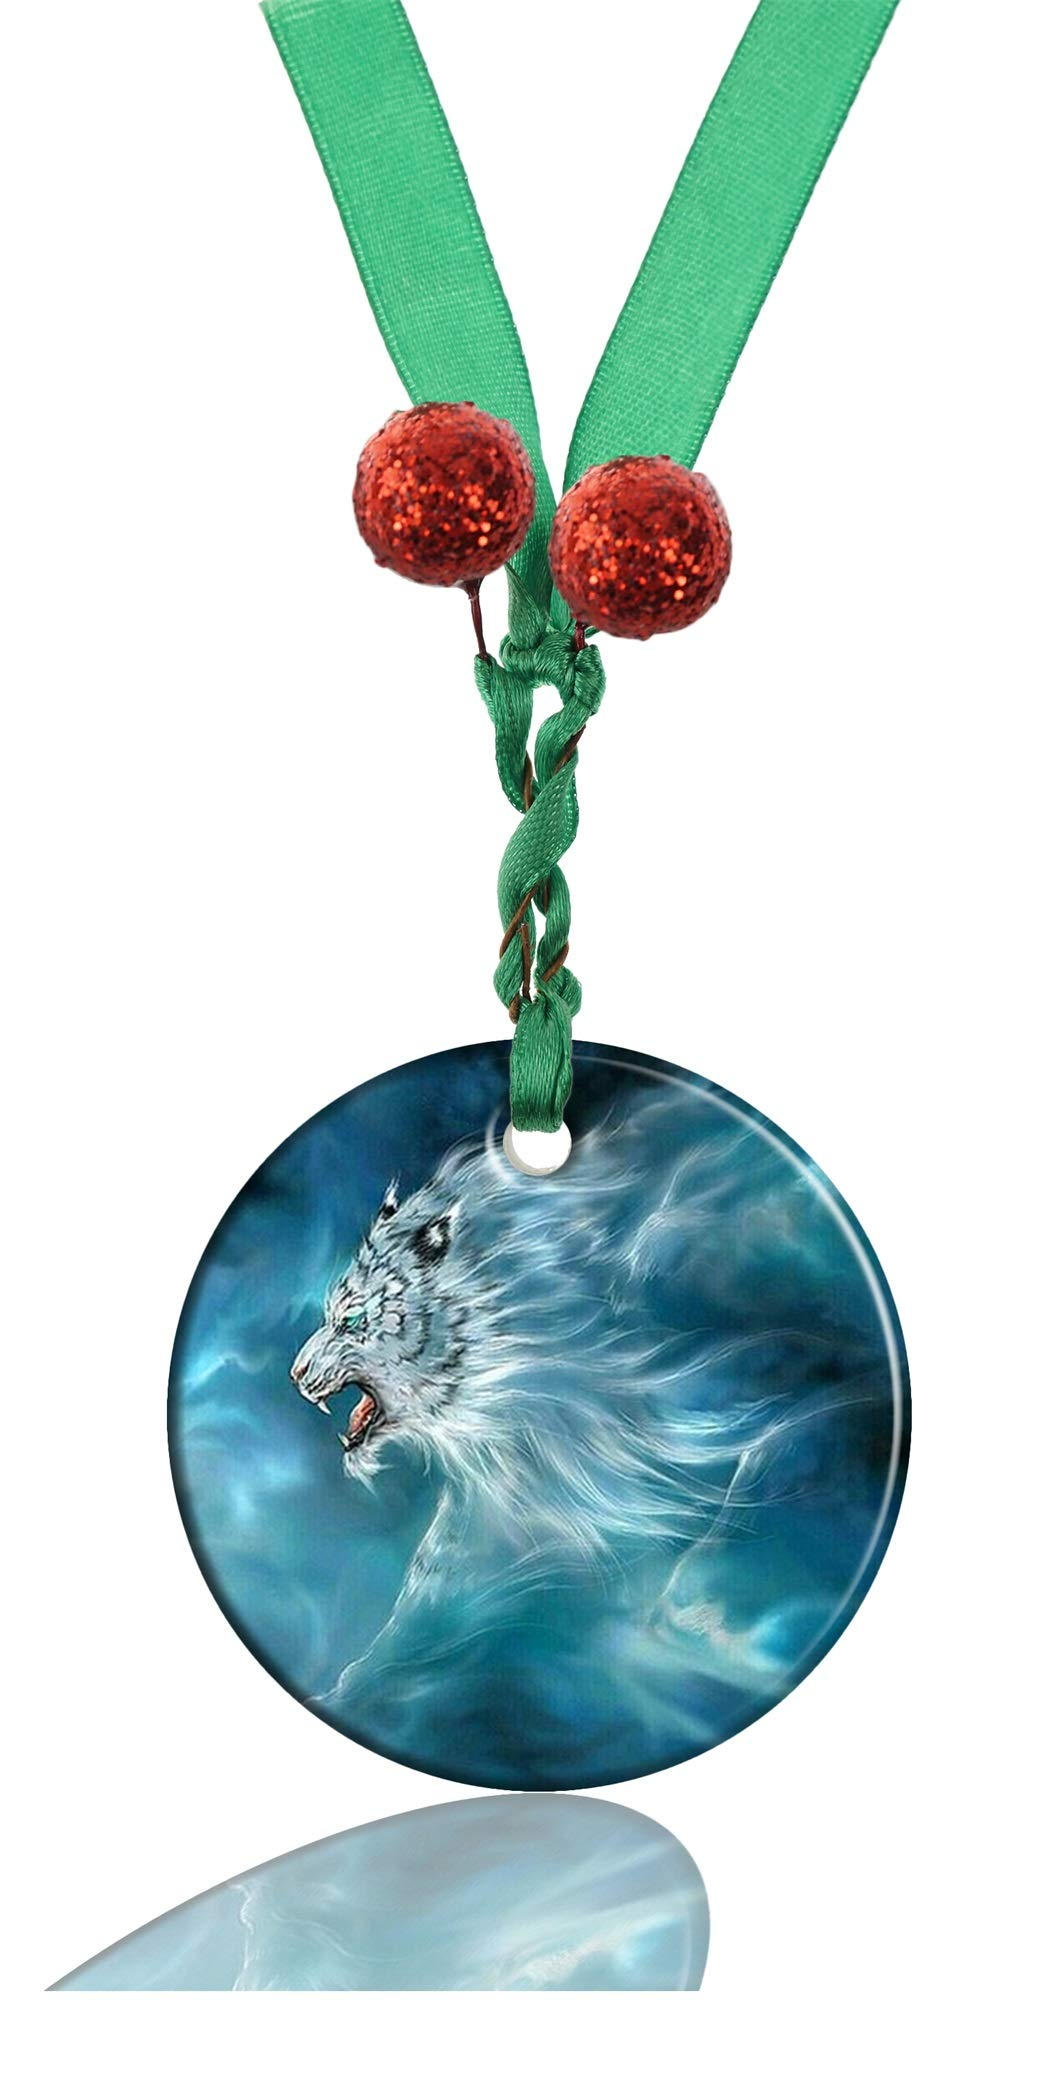 GDEE Custom Animal Tiger Personalized Round Porcelain Ornaments Christmas Ornaments Home Decoration